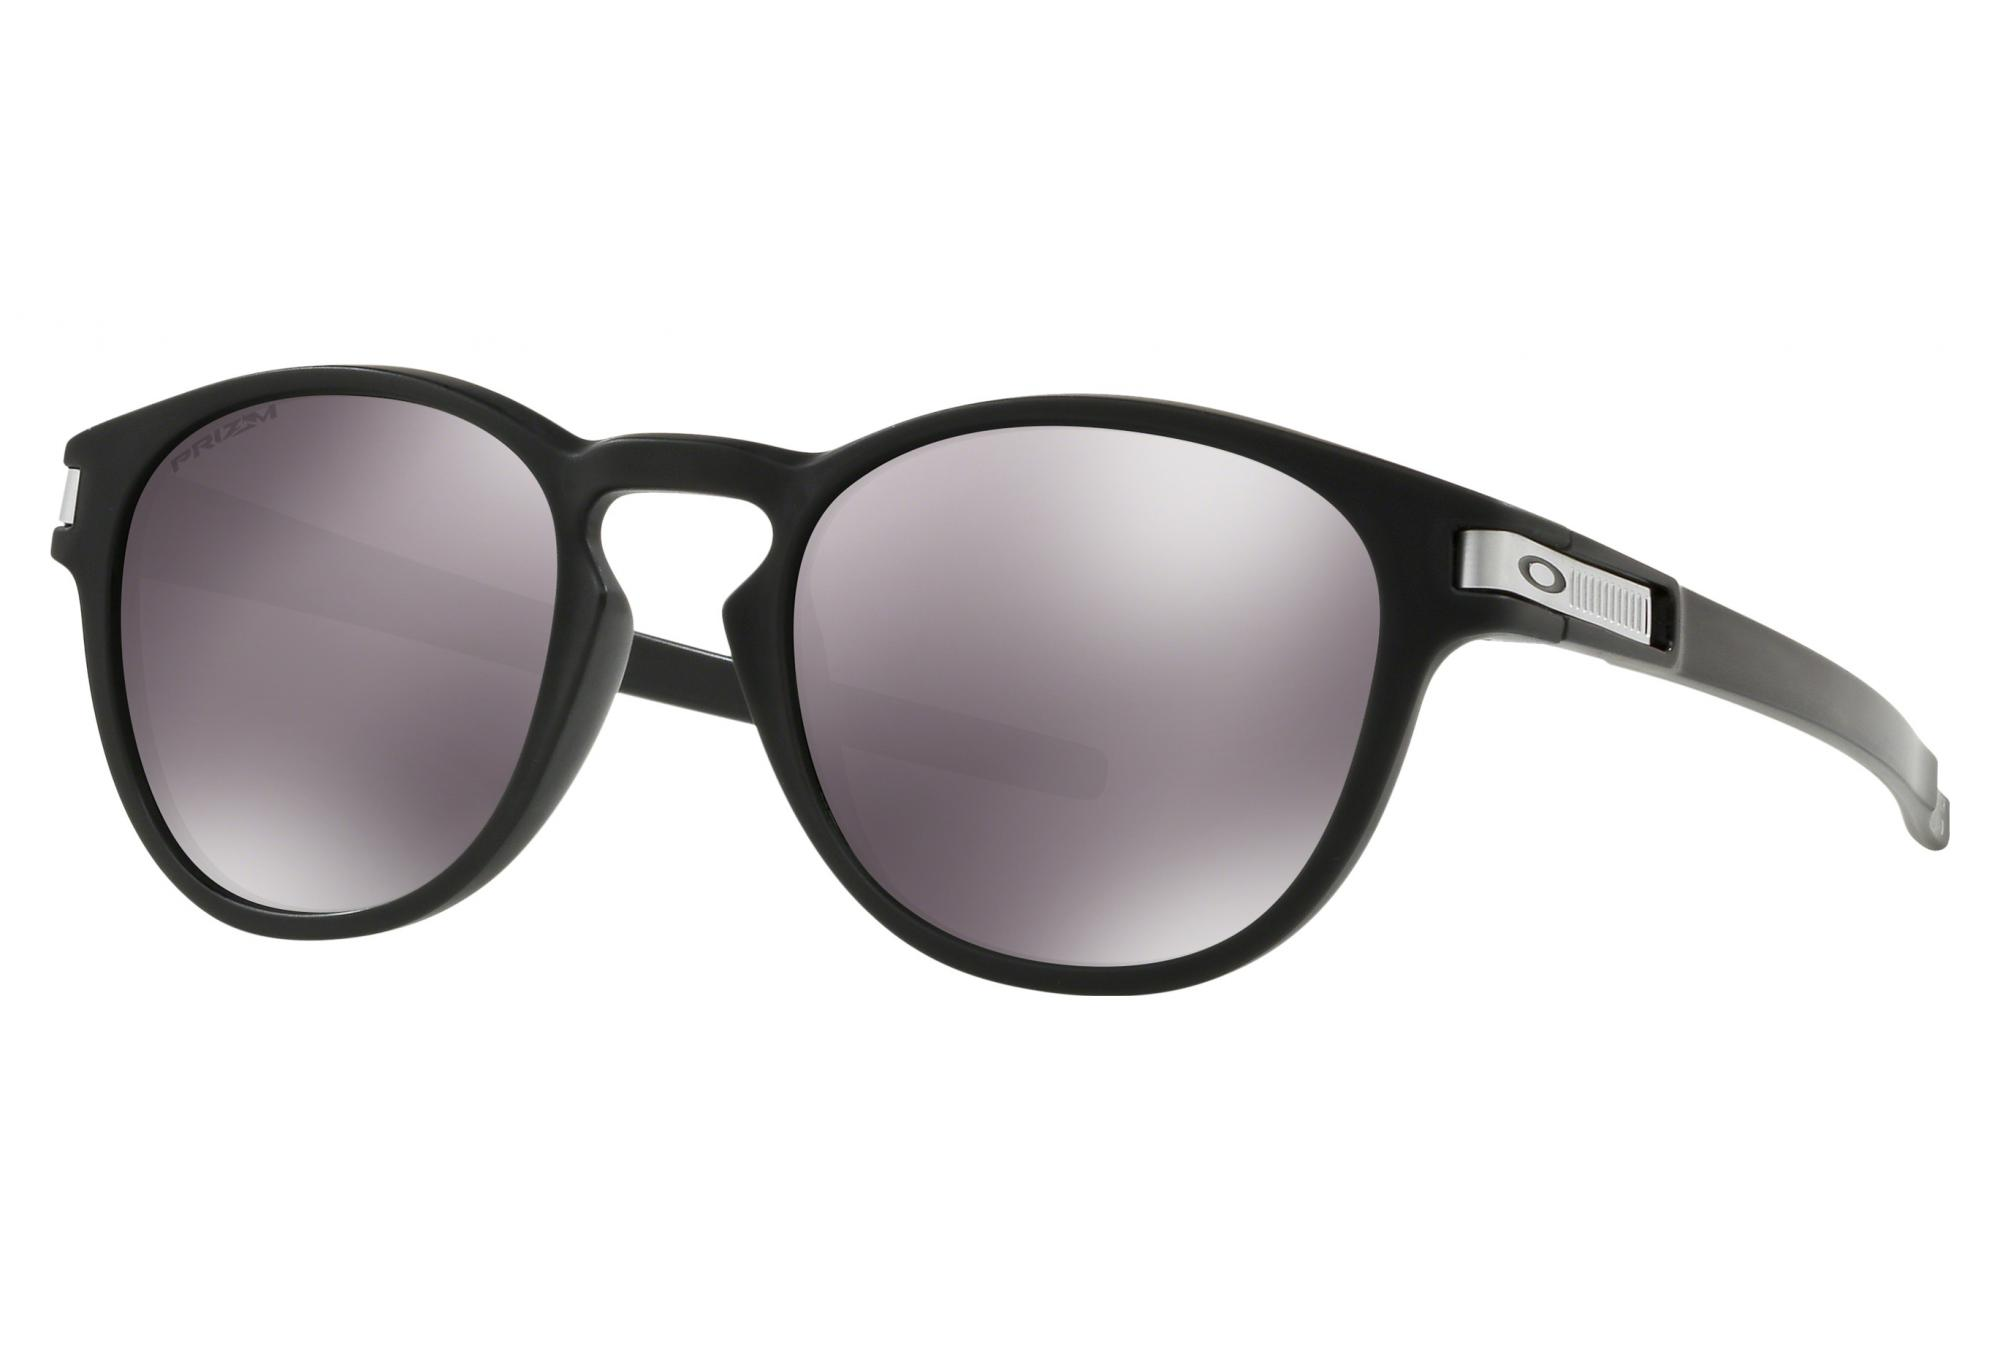 ae678dff73 OAKLEY Sunglasses Latch Grid Collection Prizm Black Ref OO9265-4053 ...